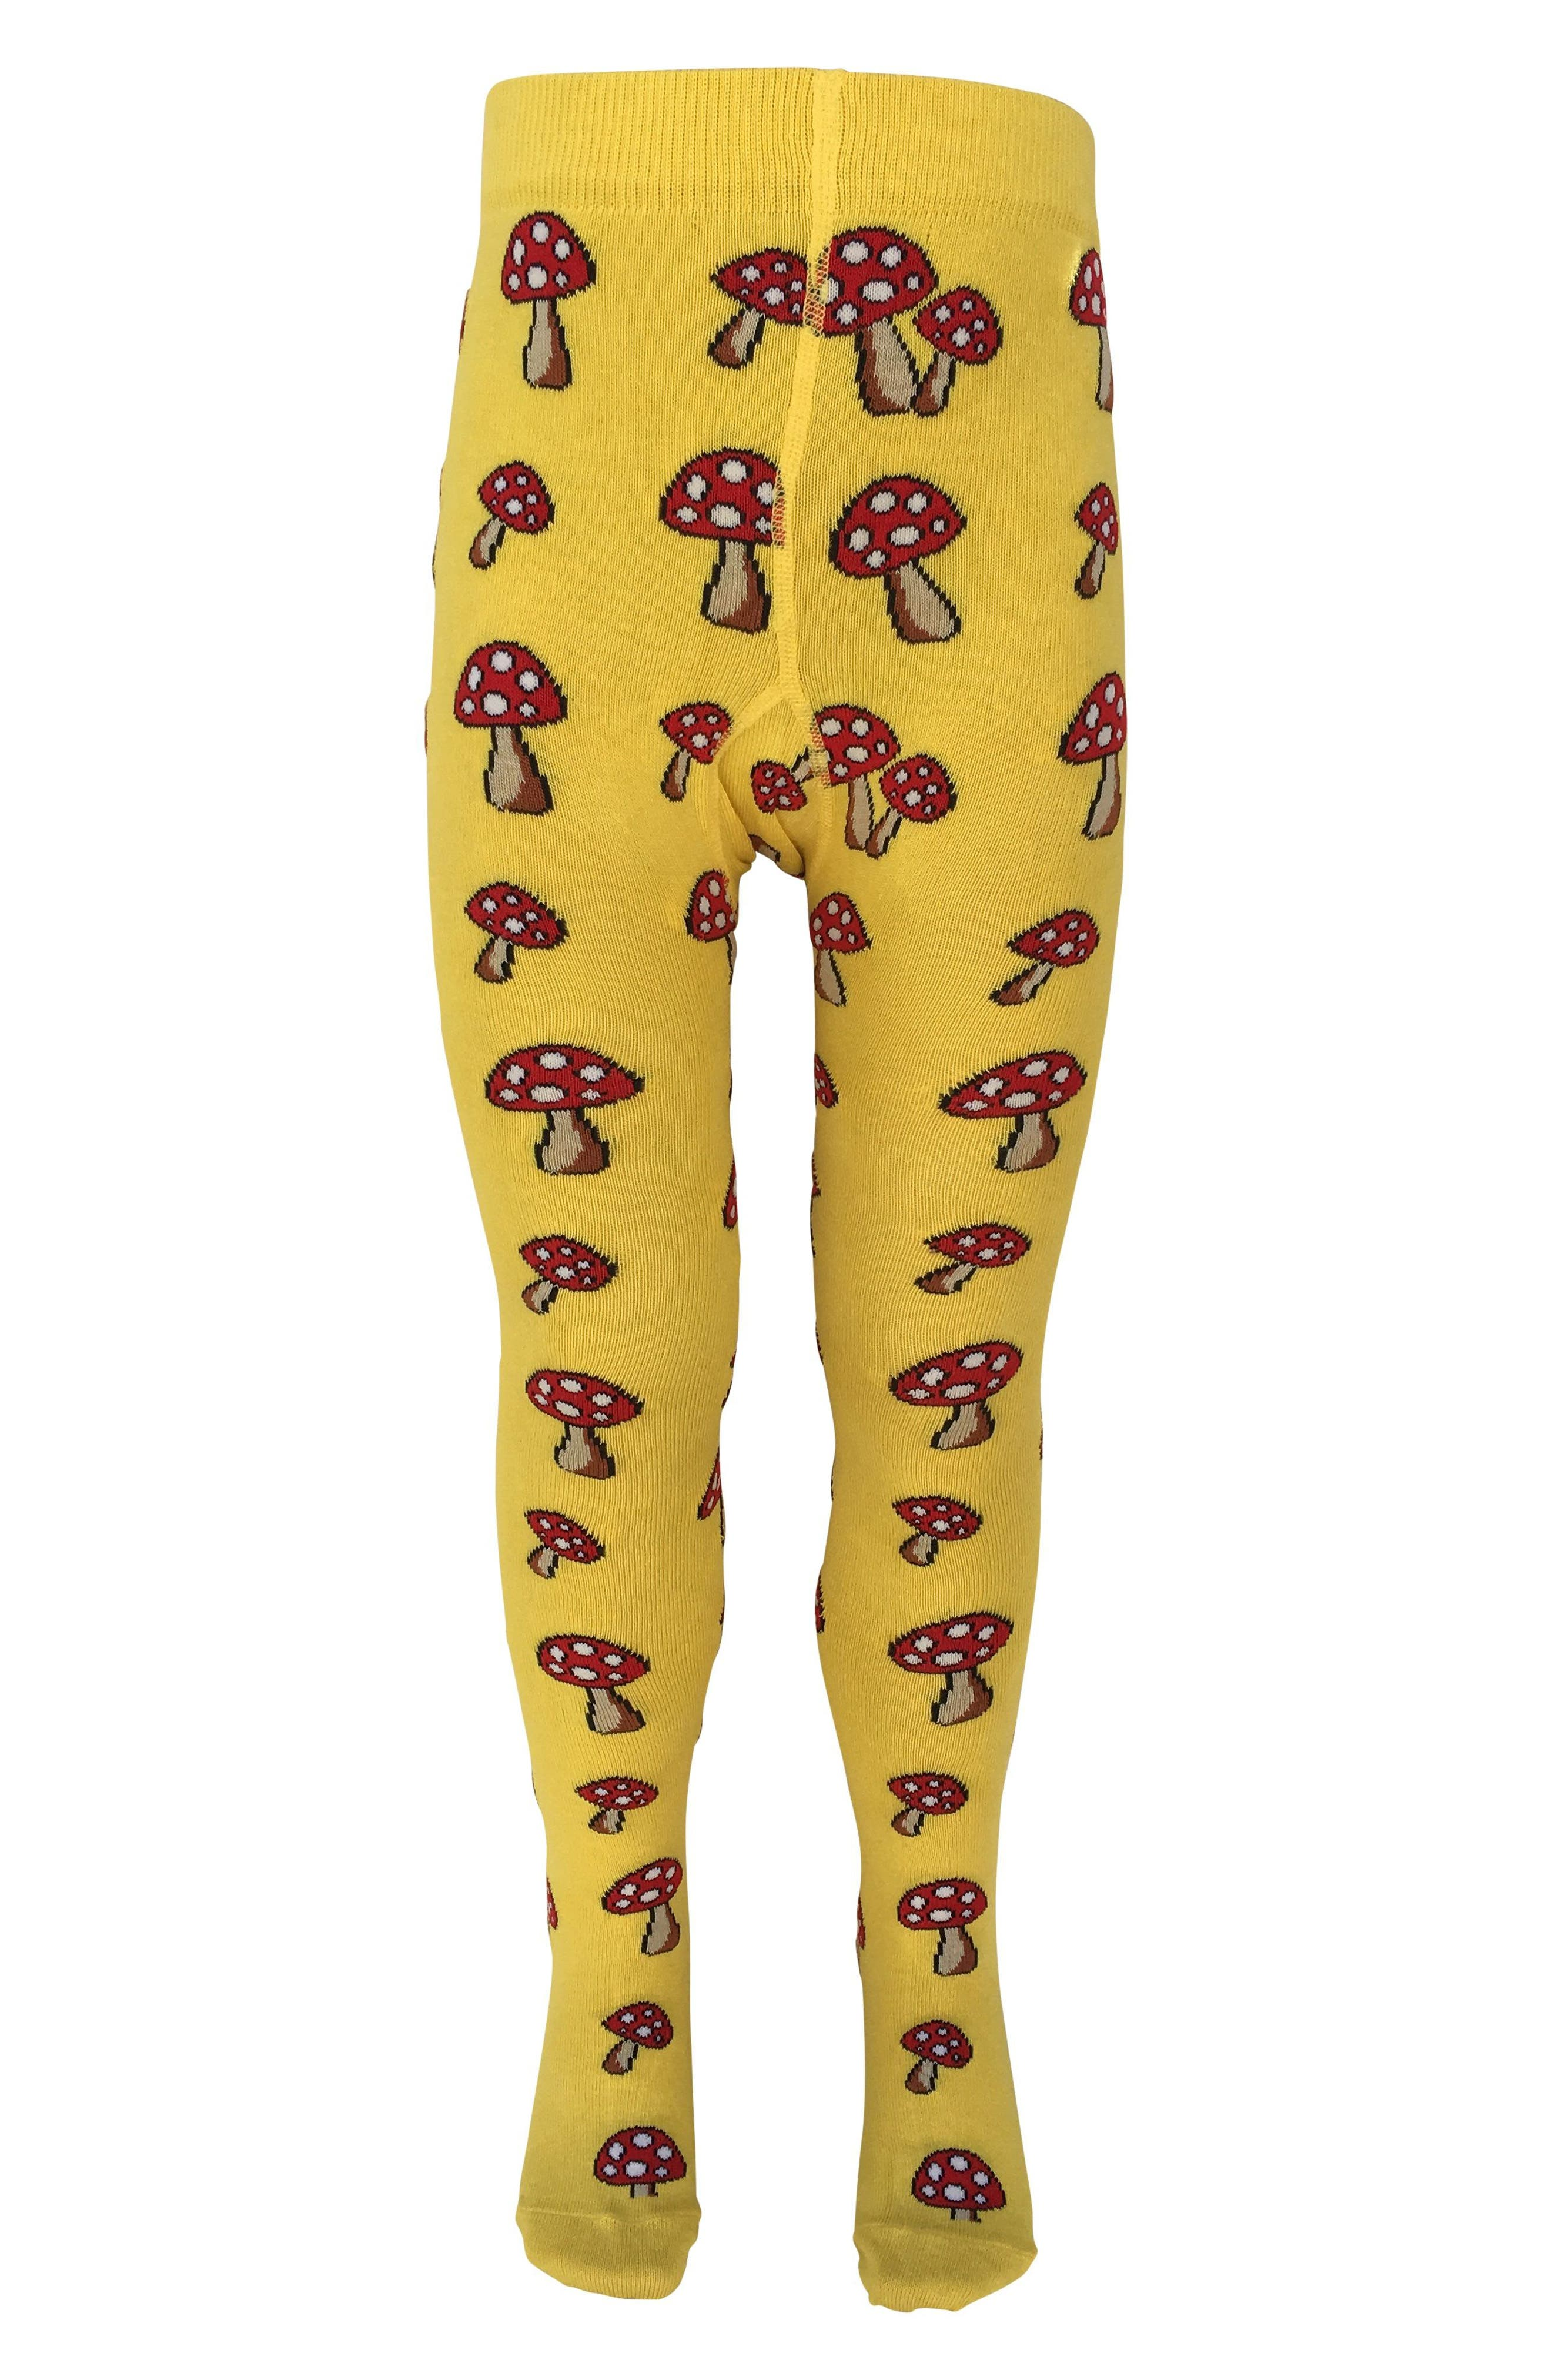 Alternate Image 1 Selected - Slugs & Snails Toadstool Tights (Baby Girls & Toddler Girls)